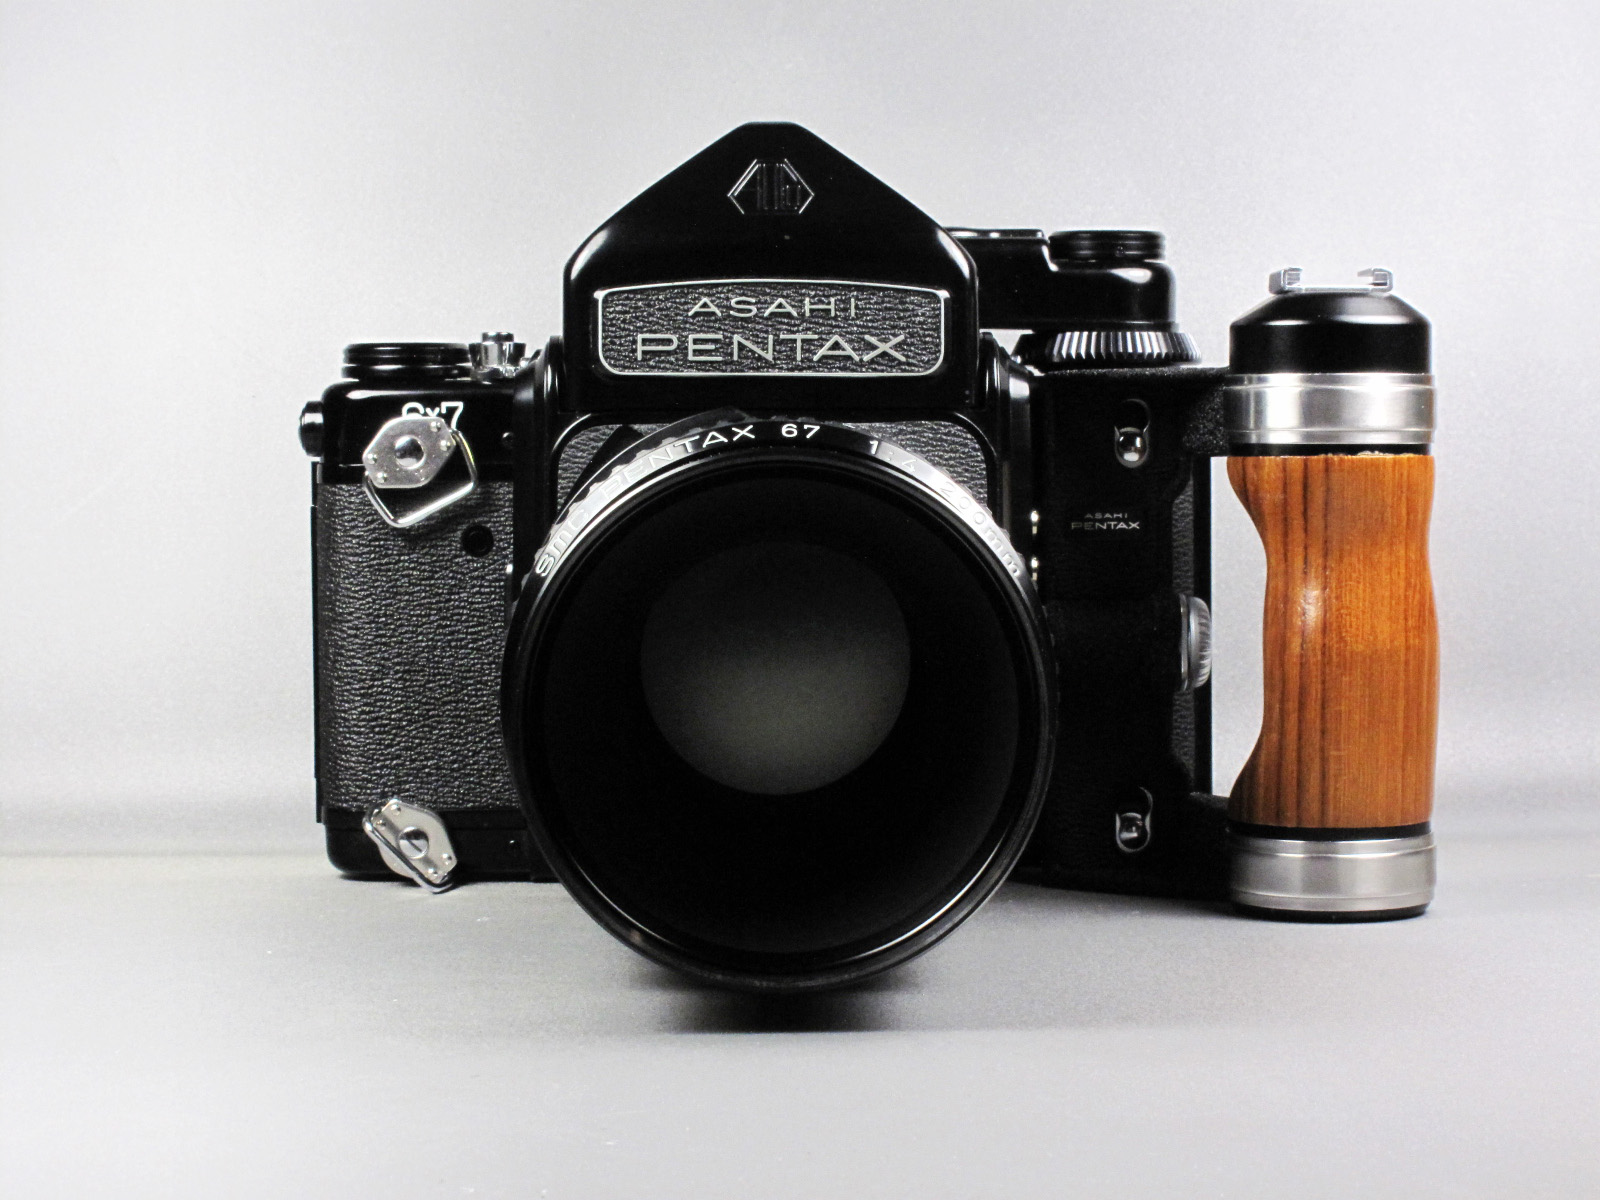 Pentax 67 SOLD at CameraTechs! - CameraTechs Inc.